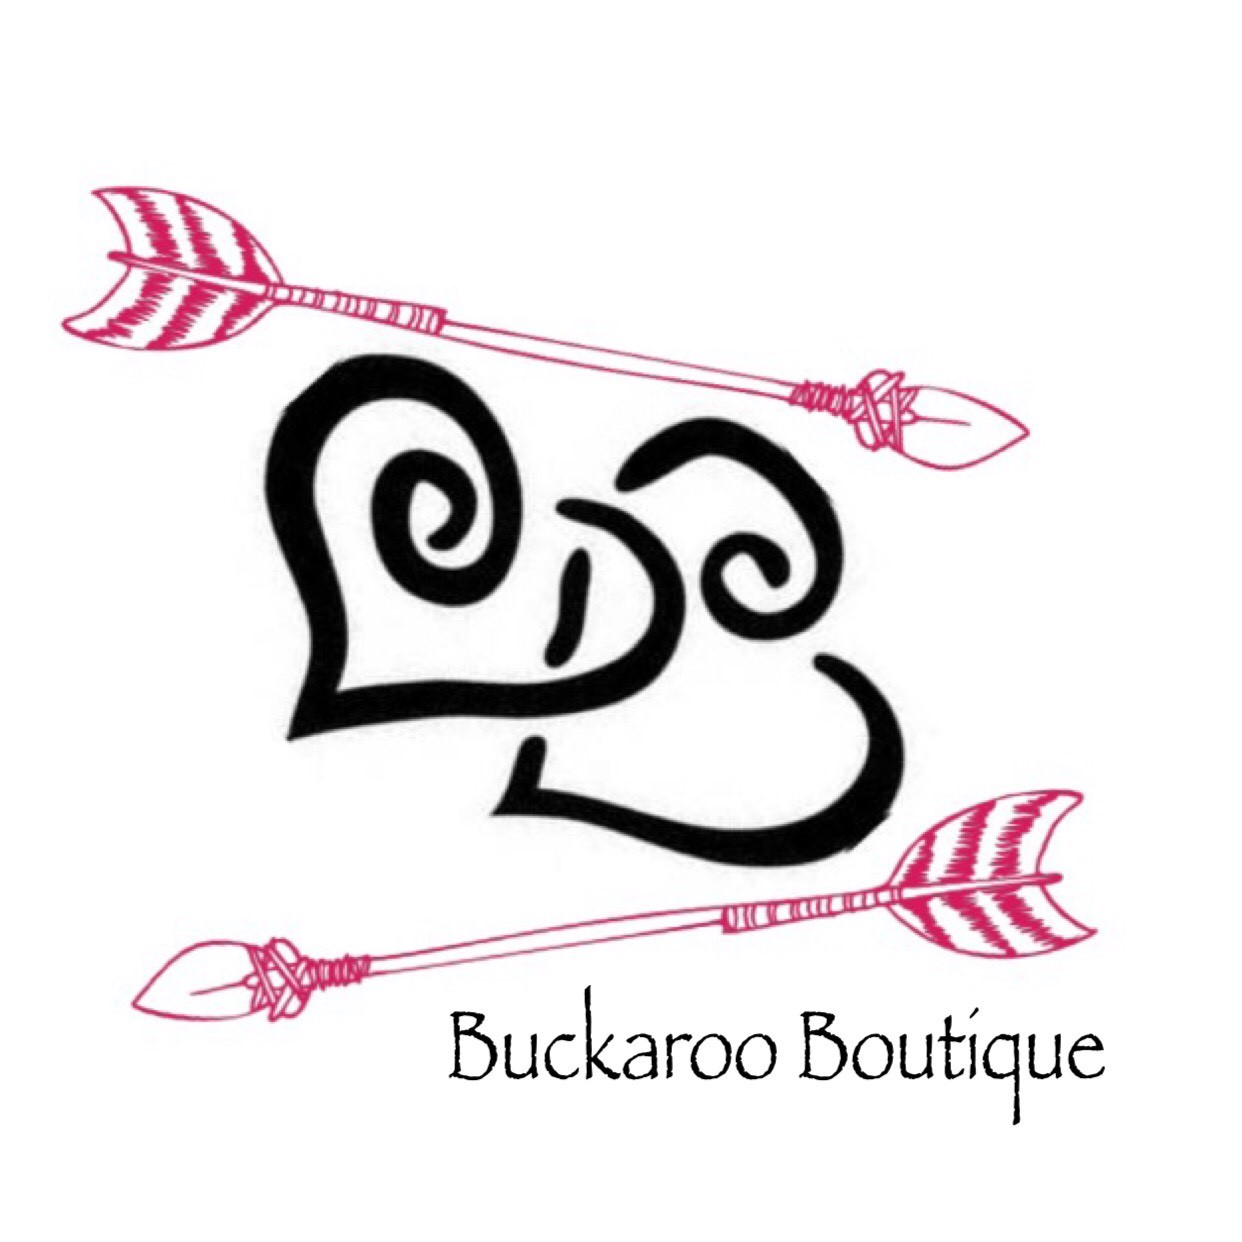 Buckaroo Boutique